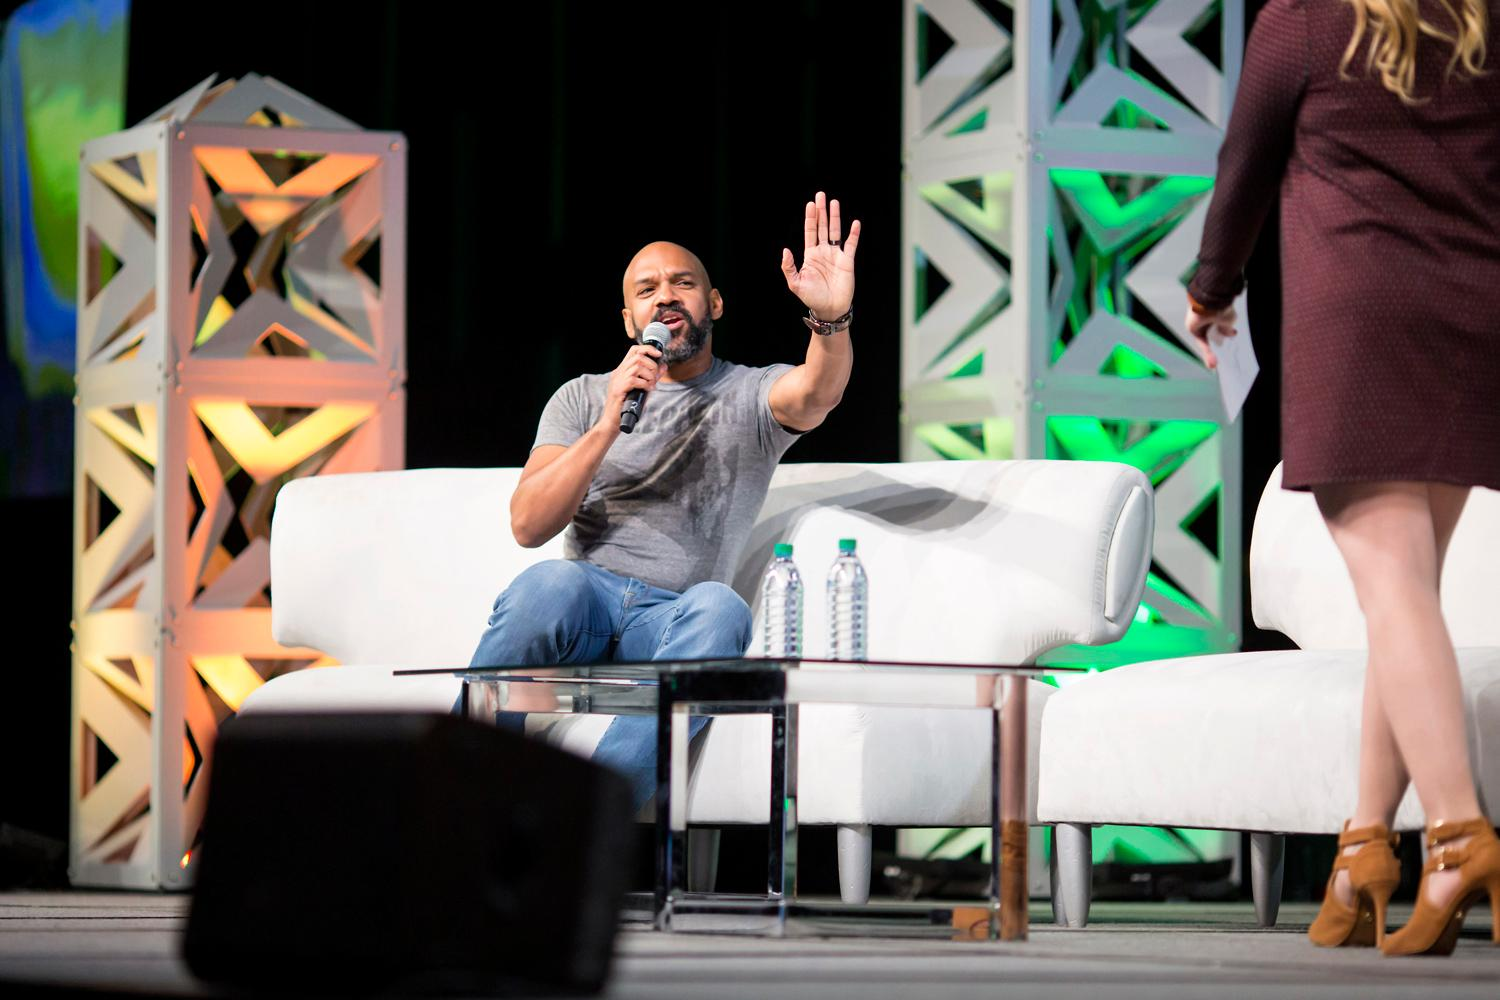 WOW! It's day one of the 2018 Emerald City Comic Con it delivered amazing (as per usual) cosplay! Thousands of attendees came out to buy merchandise, people watch, and see the guest panelists, with a highlight from Khary Payton from the Walking Dead! (Sy Bean / Seattle Refined).